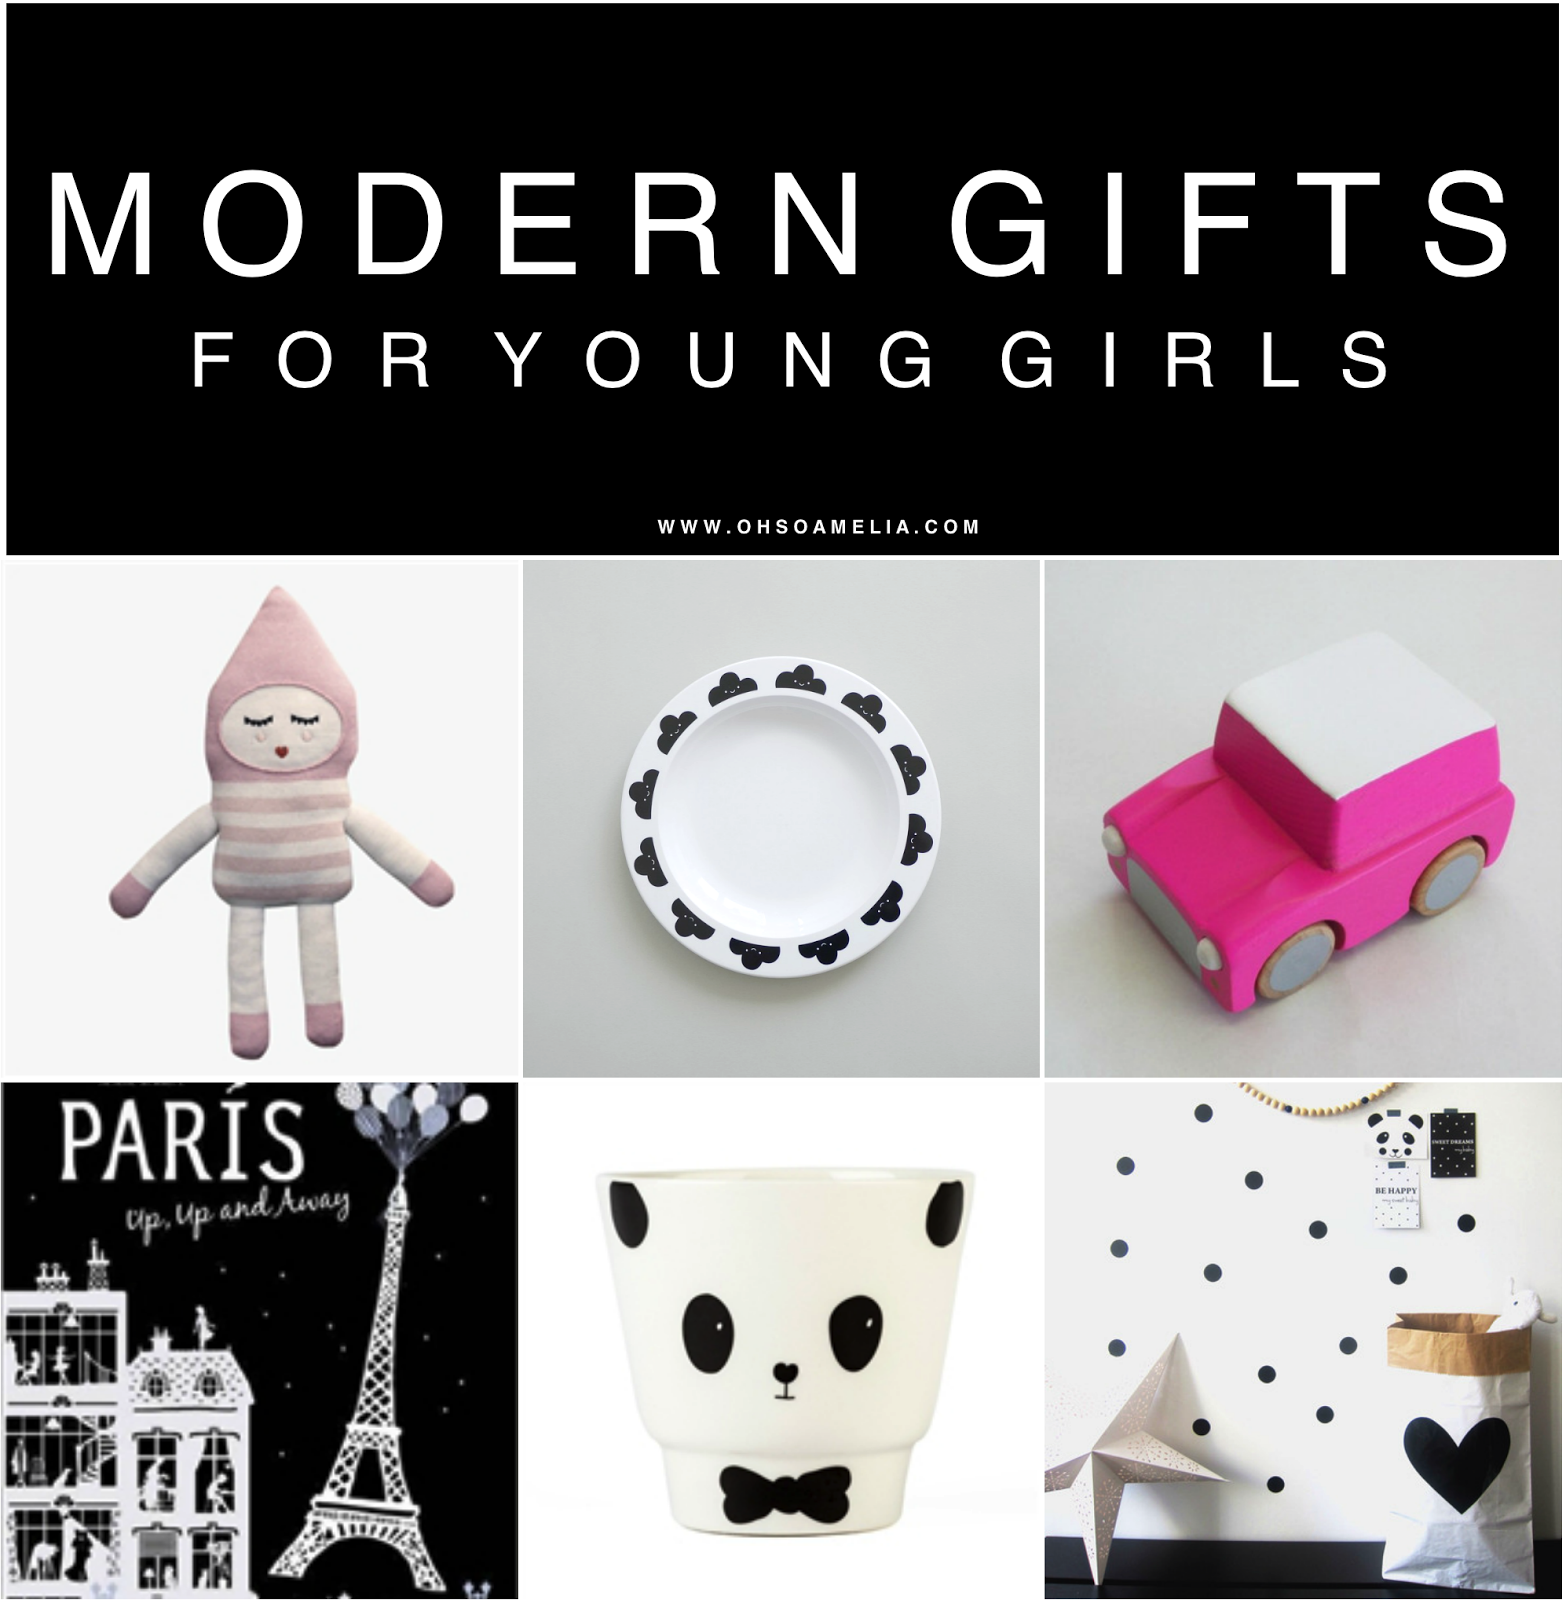 Modern gifts for young girls for the modern family